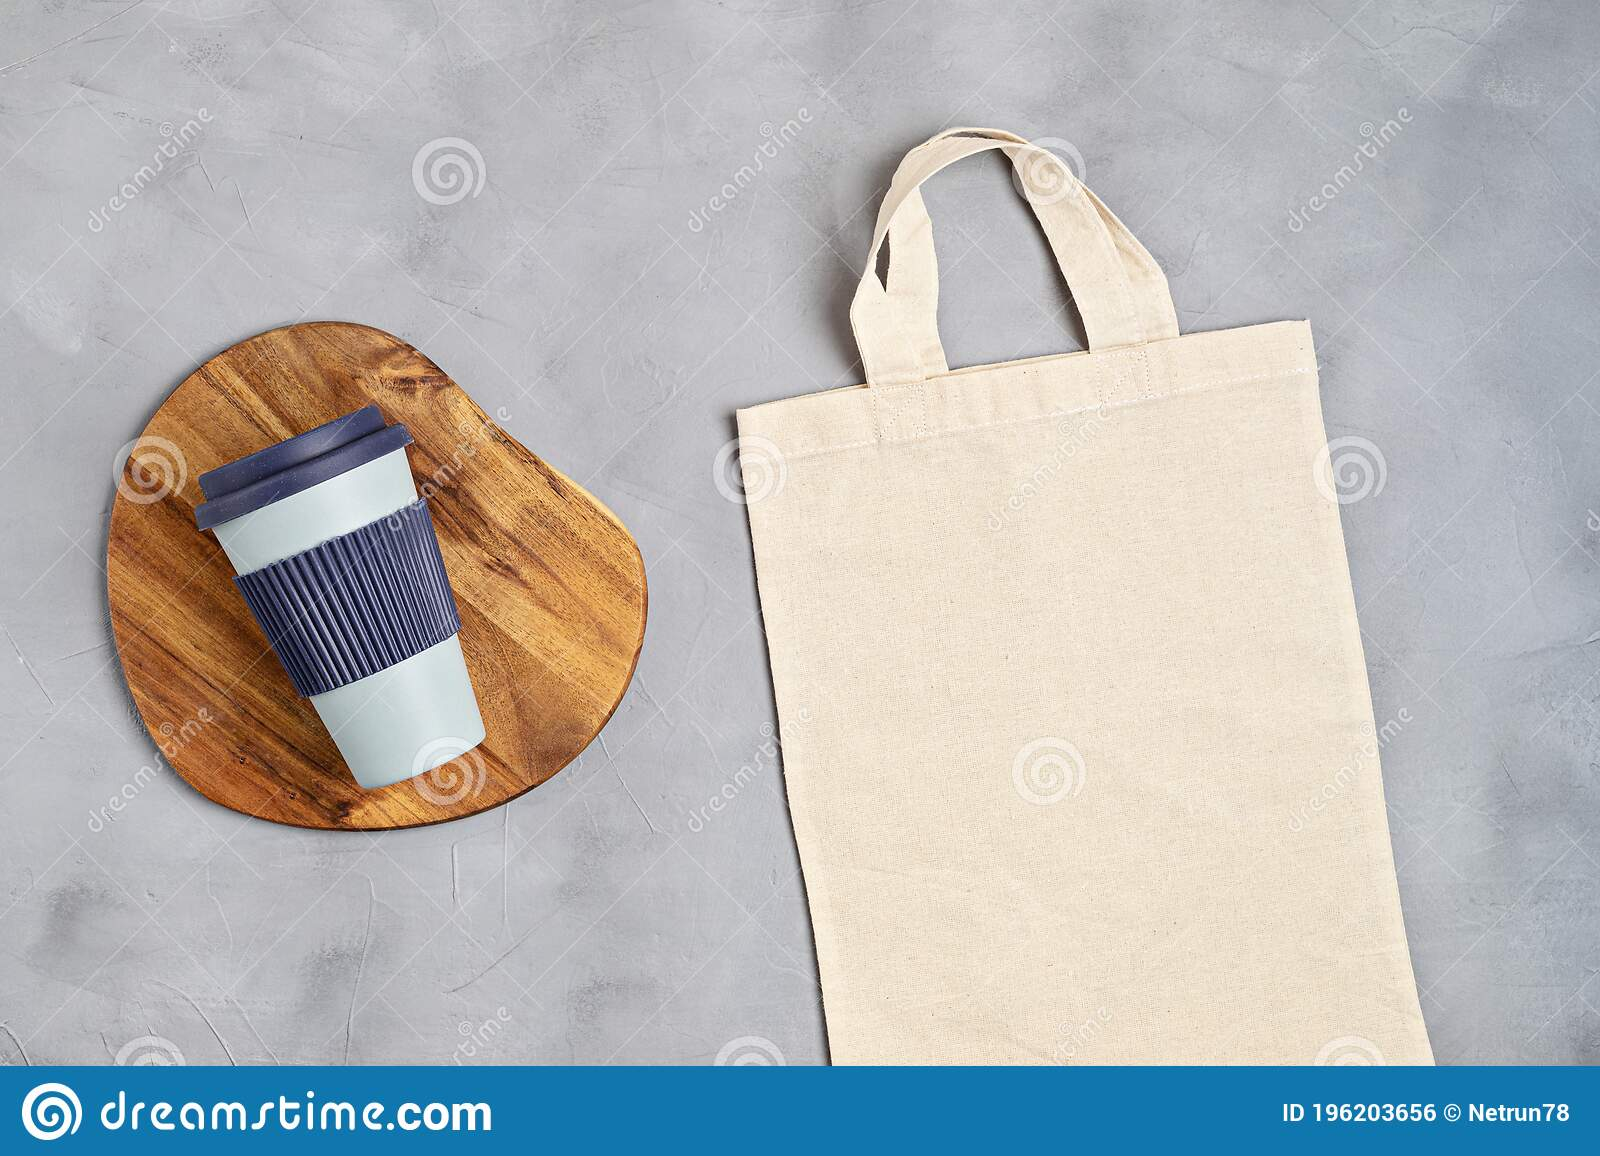 Paper bags are both biodegradable and recyclable. Cotton Tote Bag Mockup Zero Waste Living Sustainability Eco Friendly Lifestyle Stock Photo Image Of Tote Waste 196203656